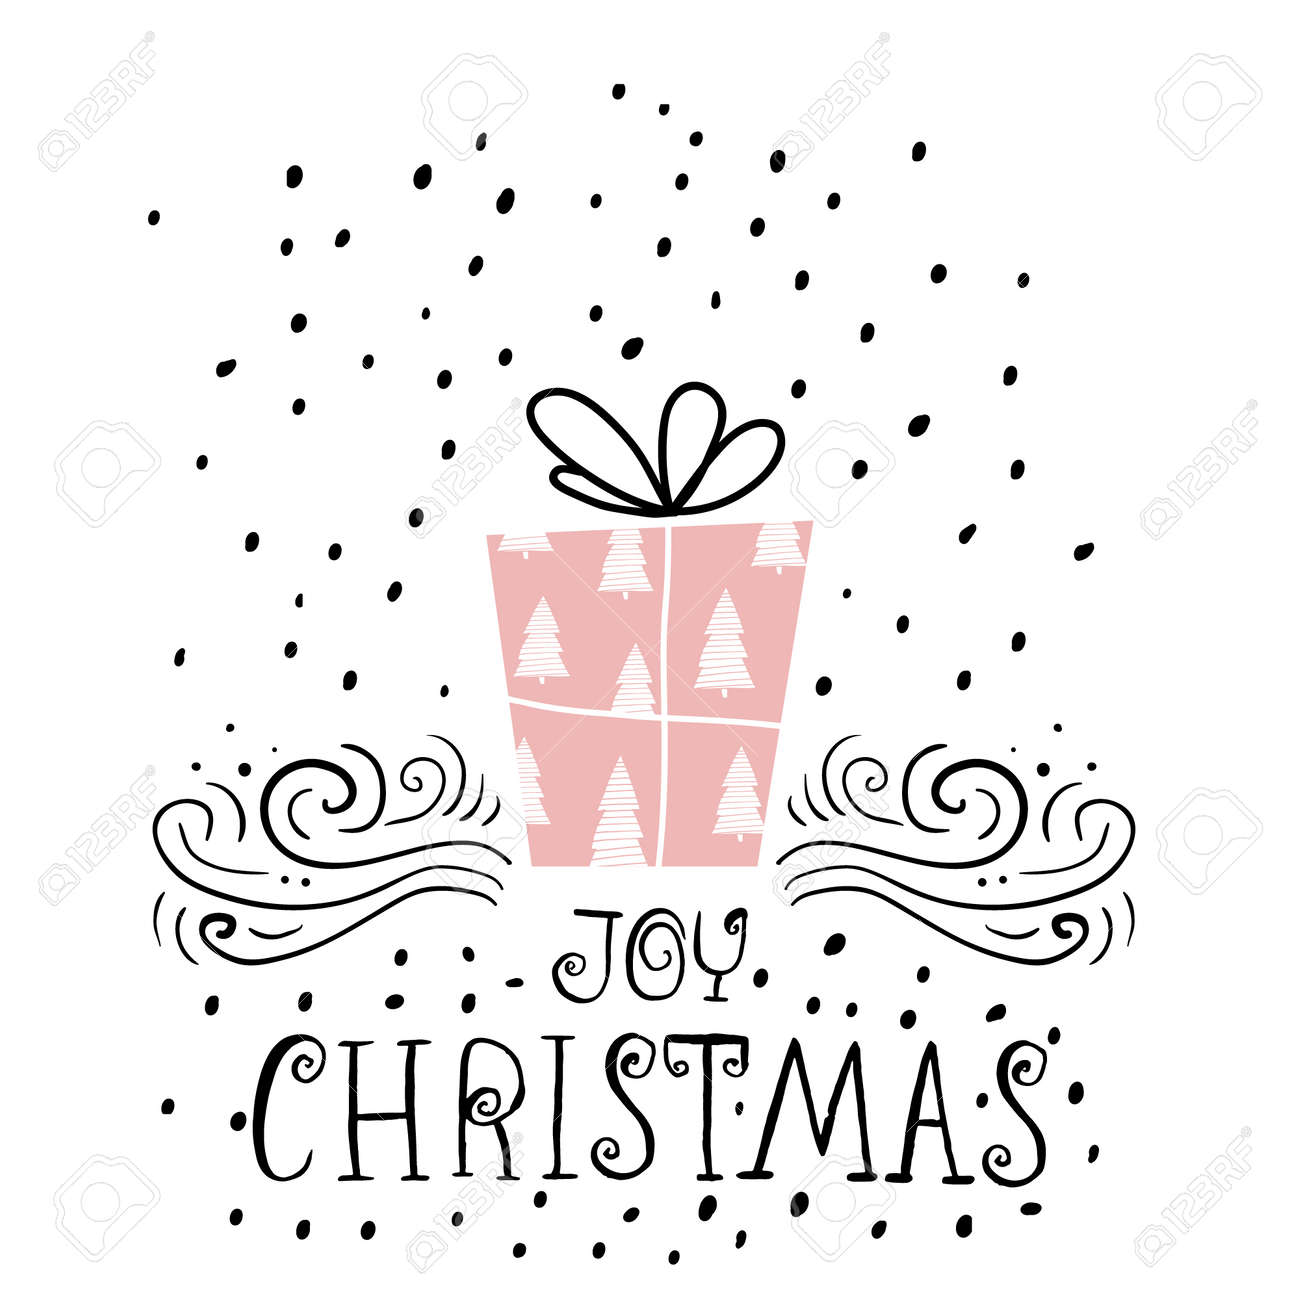 Joy christmas trendy design greeting card holiday winter template joy christmas trendy design greeting card holiday winter template with handwritten lettering x mass m4hsunfo